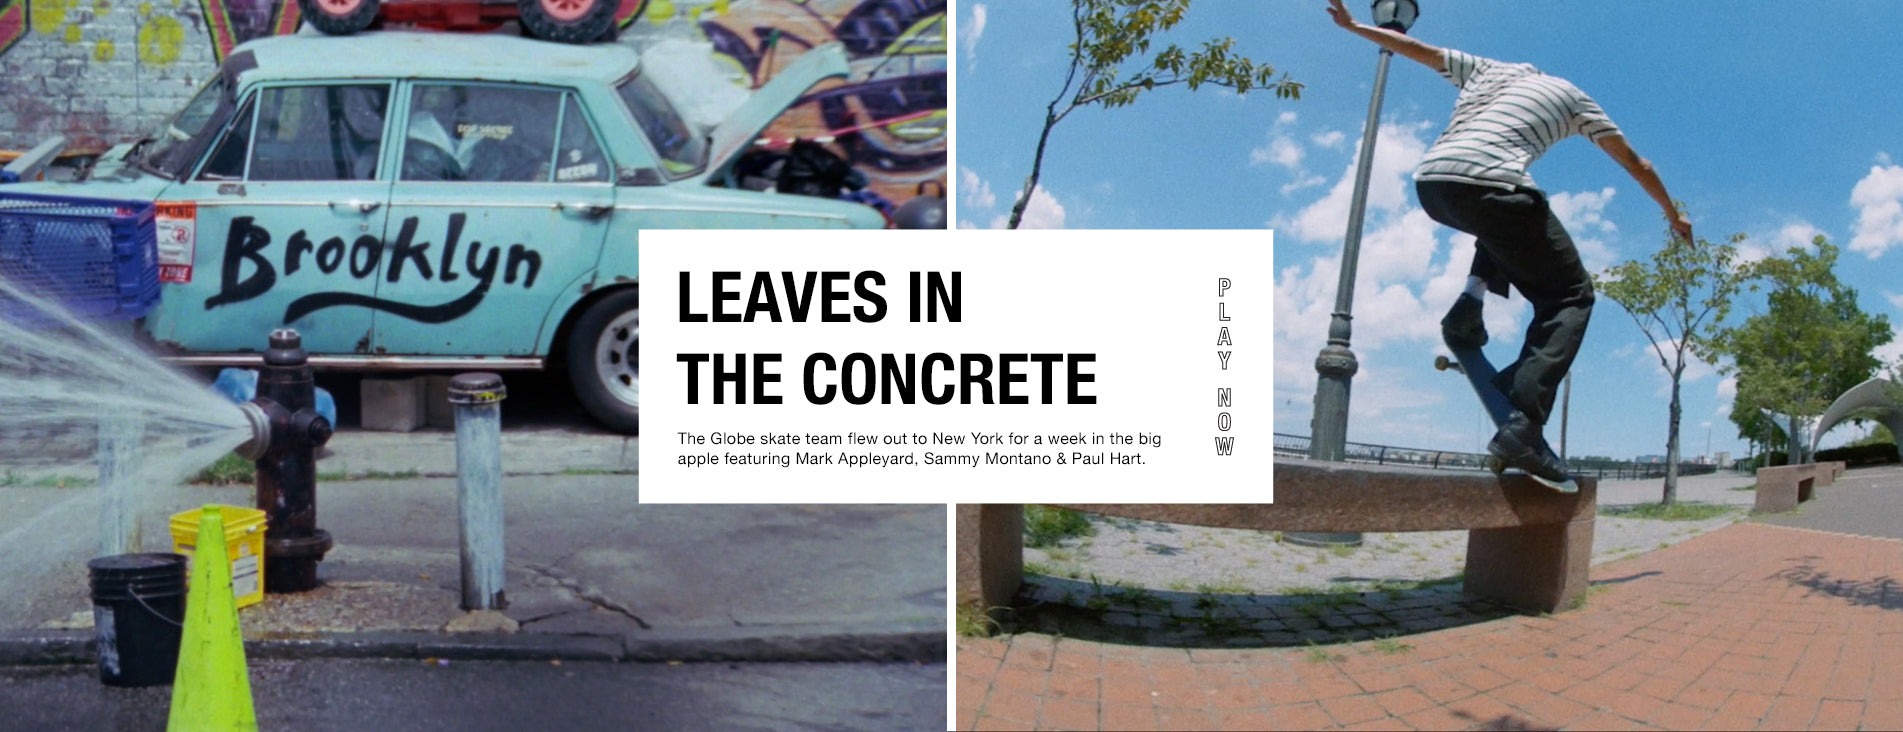 Globe_Brand_Leaves_in_the_Concrete_NYC_skate_video_edit